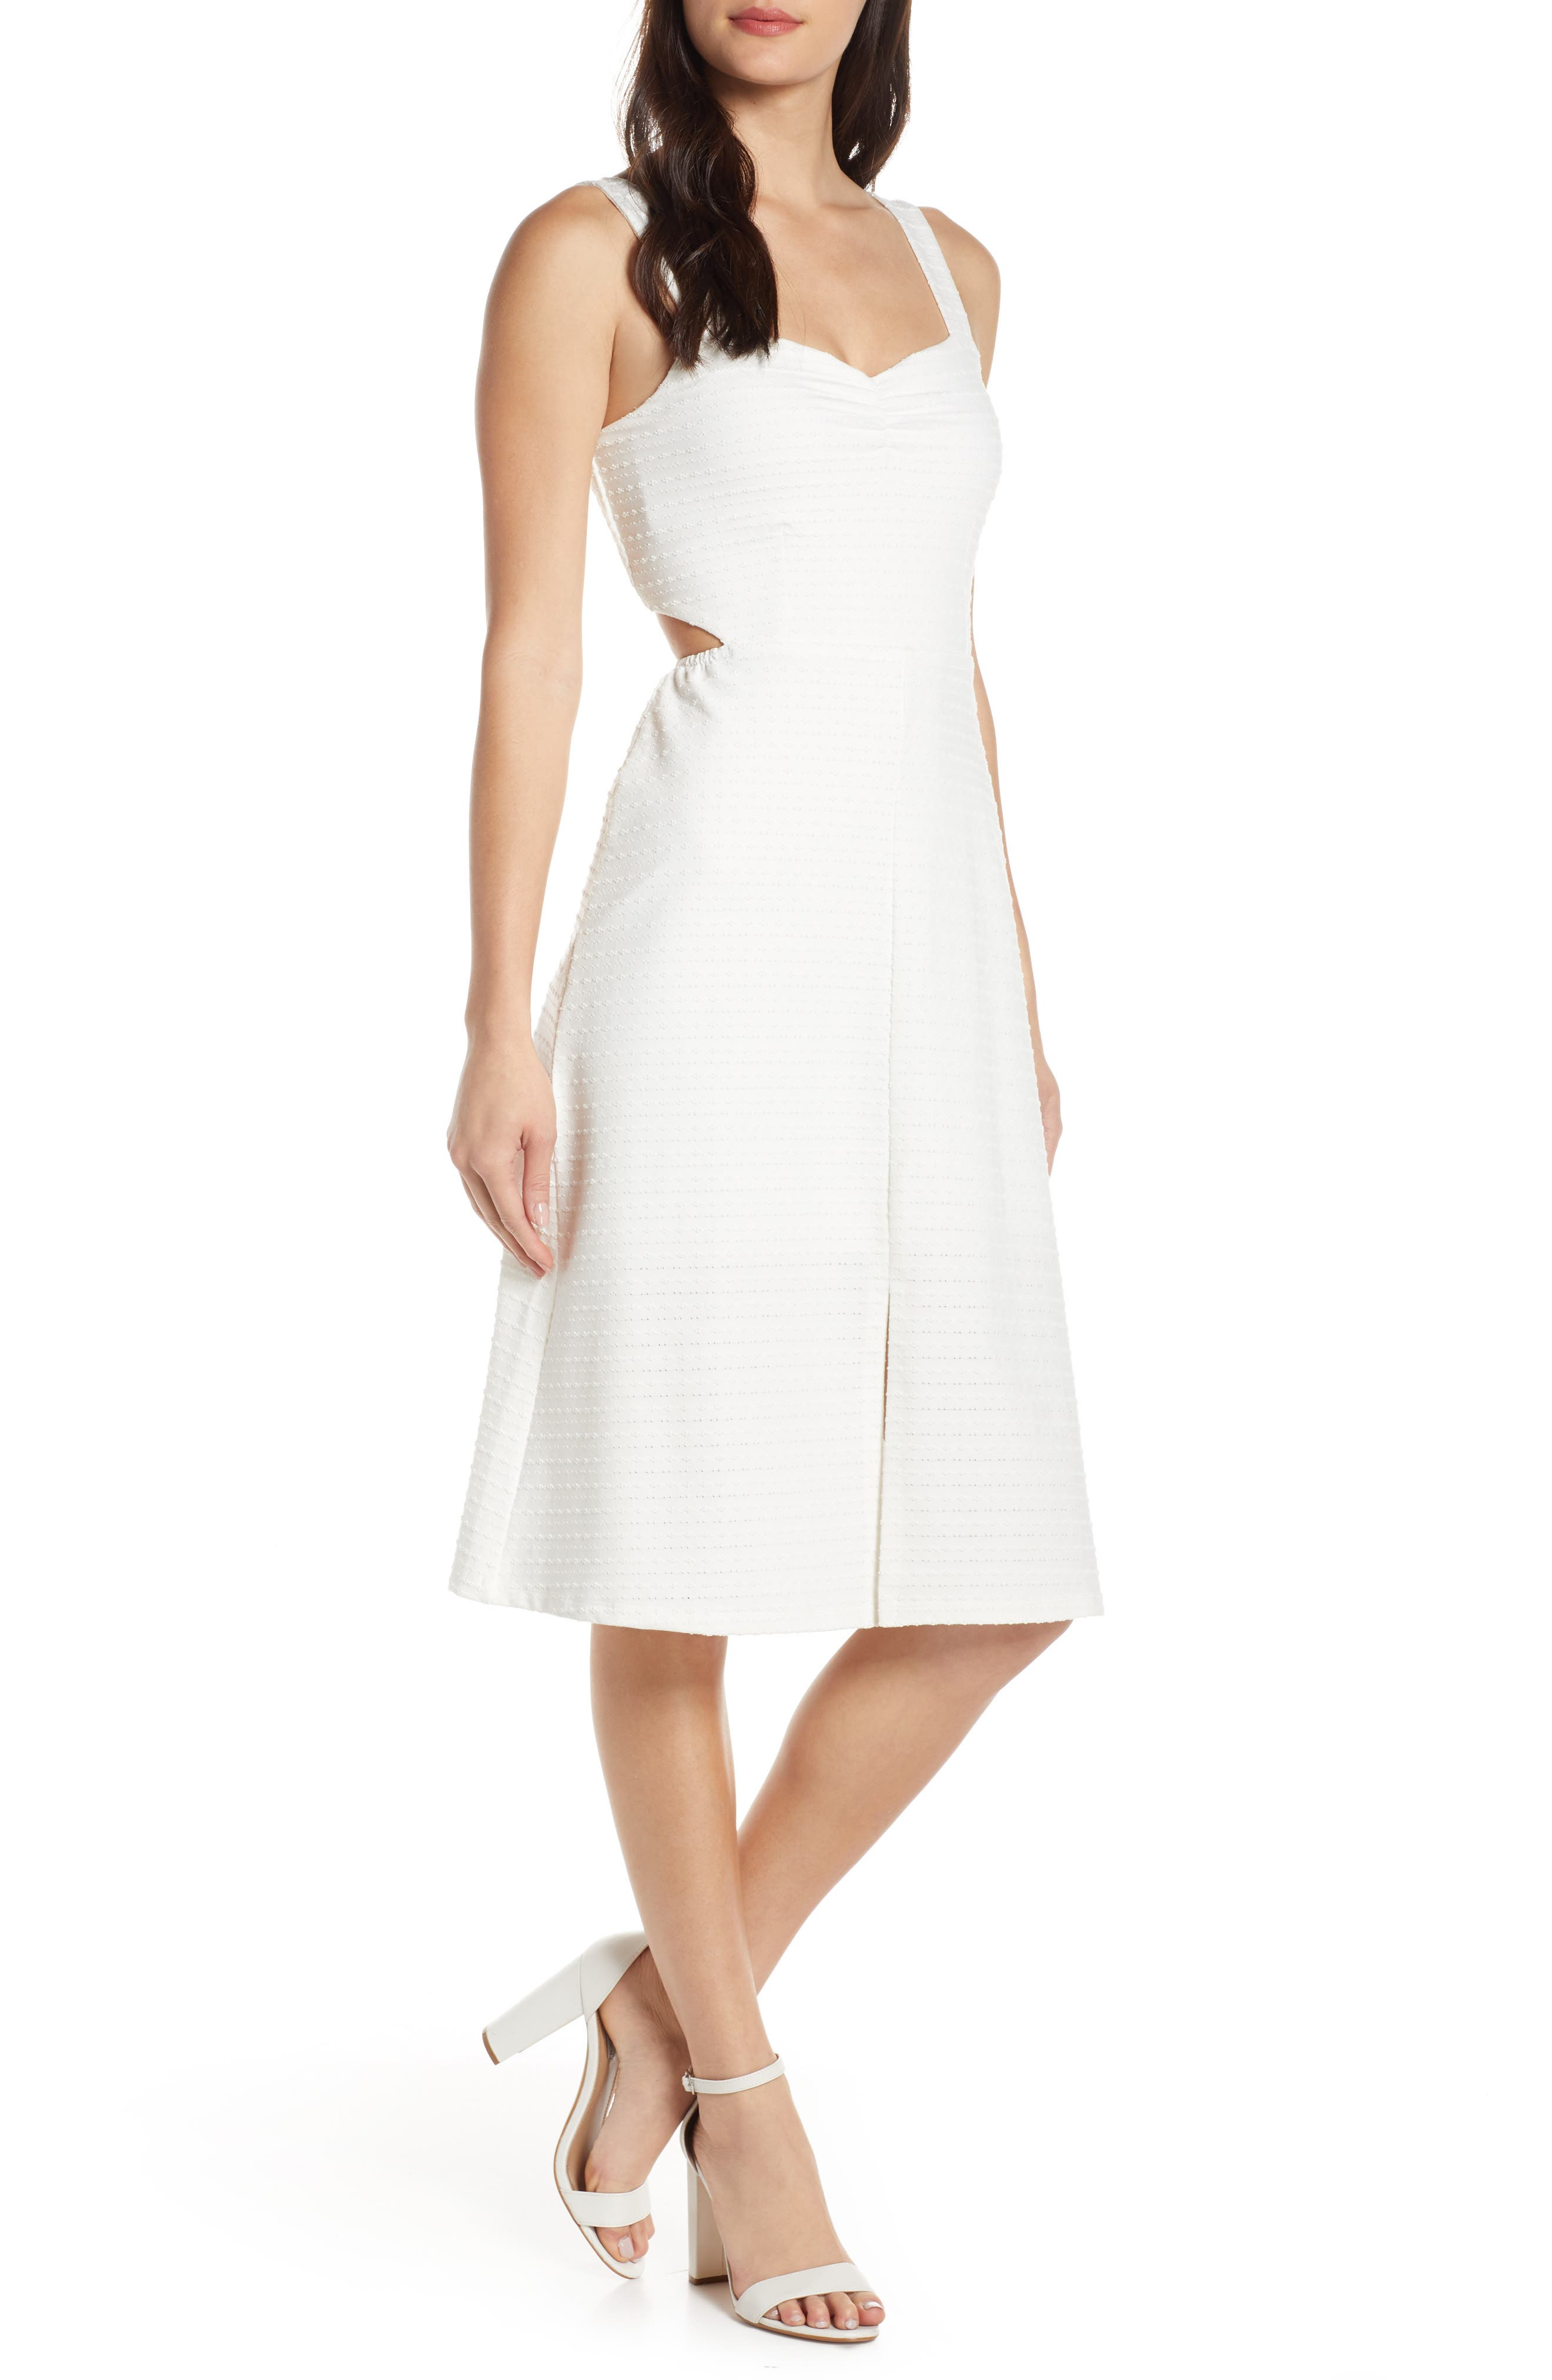 Ali & Jay Ace-Ing It Fit & Flare Midi Dress, White